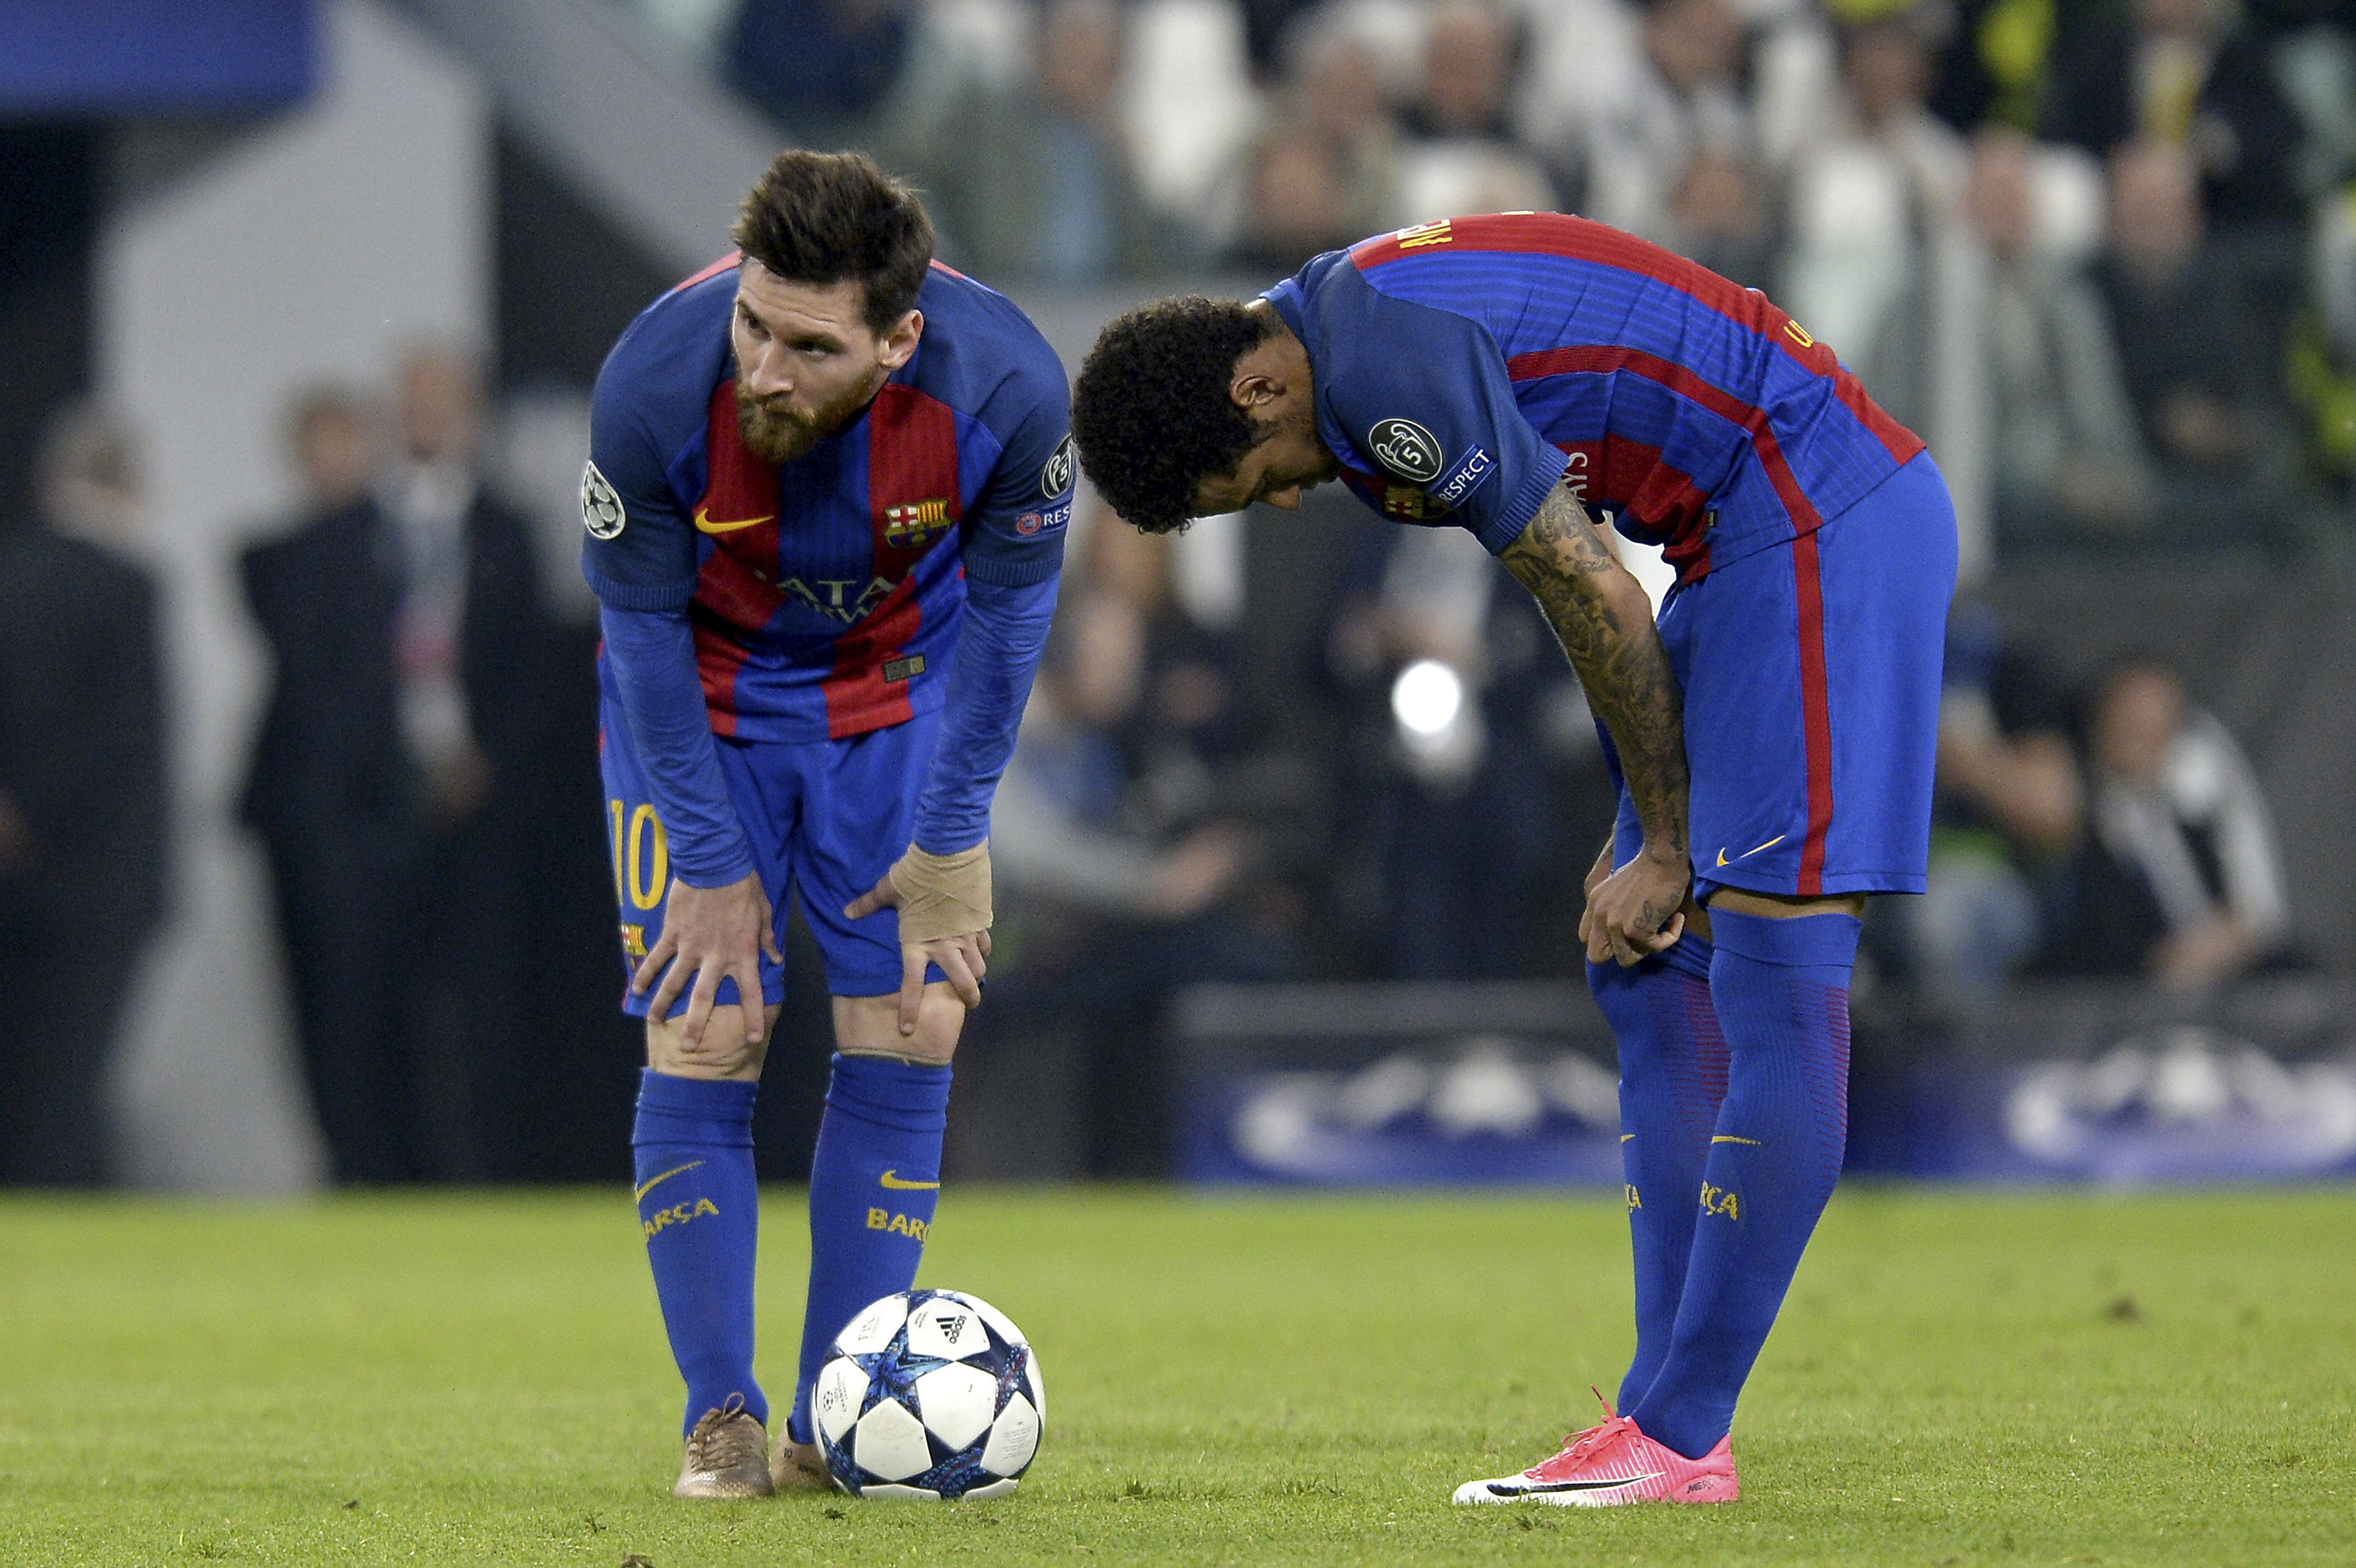 Valverde provides updates on Messi and Neymar